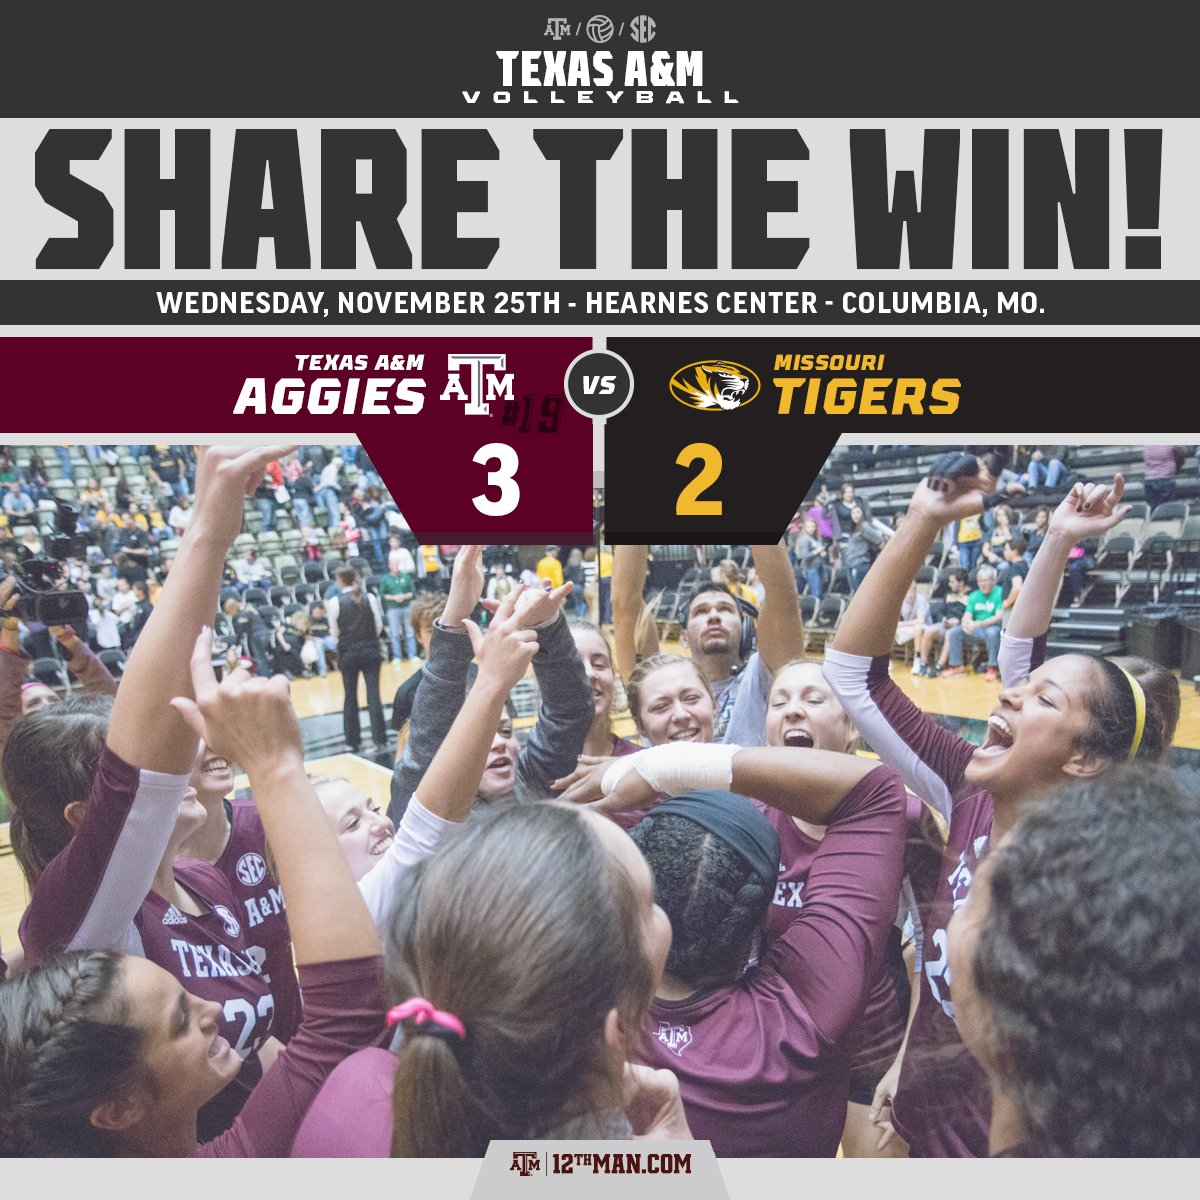 That's 13 in a row, & your Aggies are SEC CHAMPS! #RTtheWIN #12thMan https://t.co/46mV6ThCjk